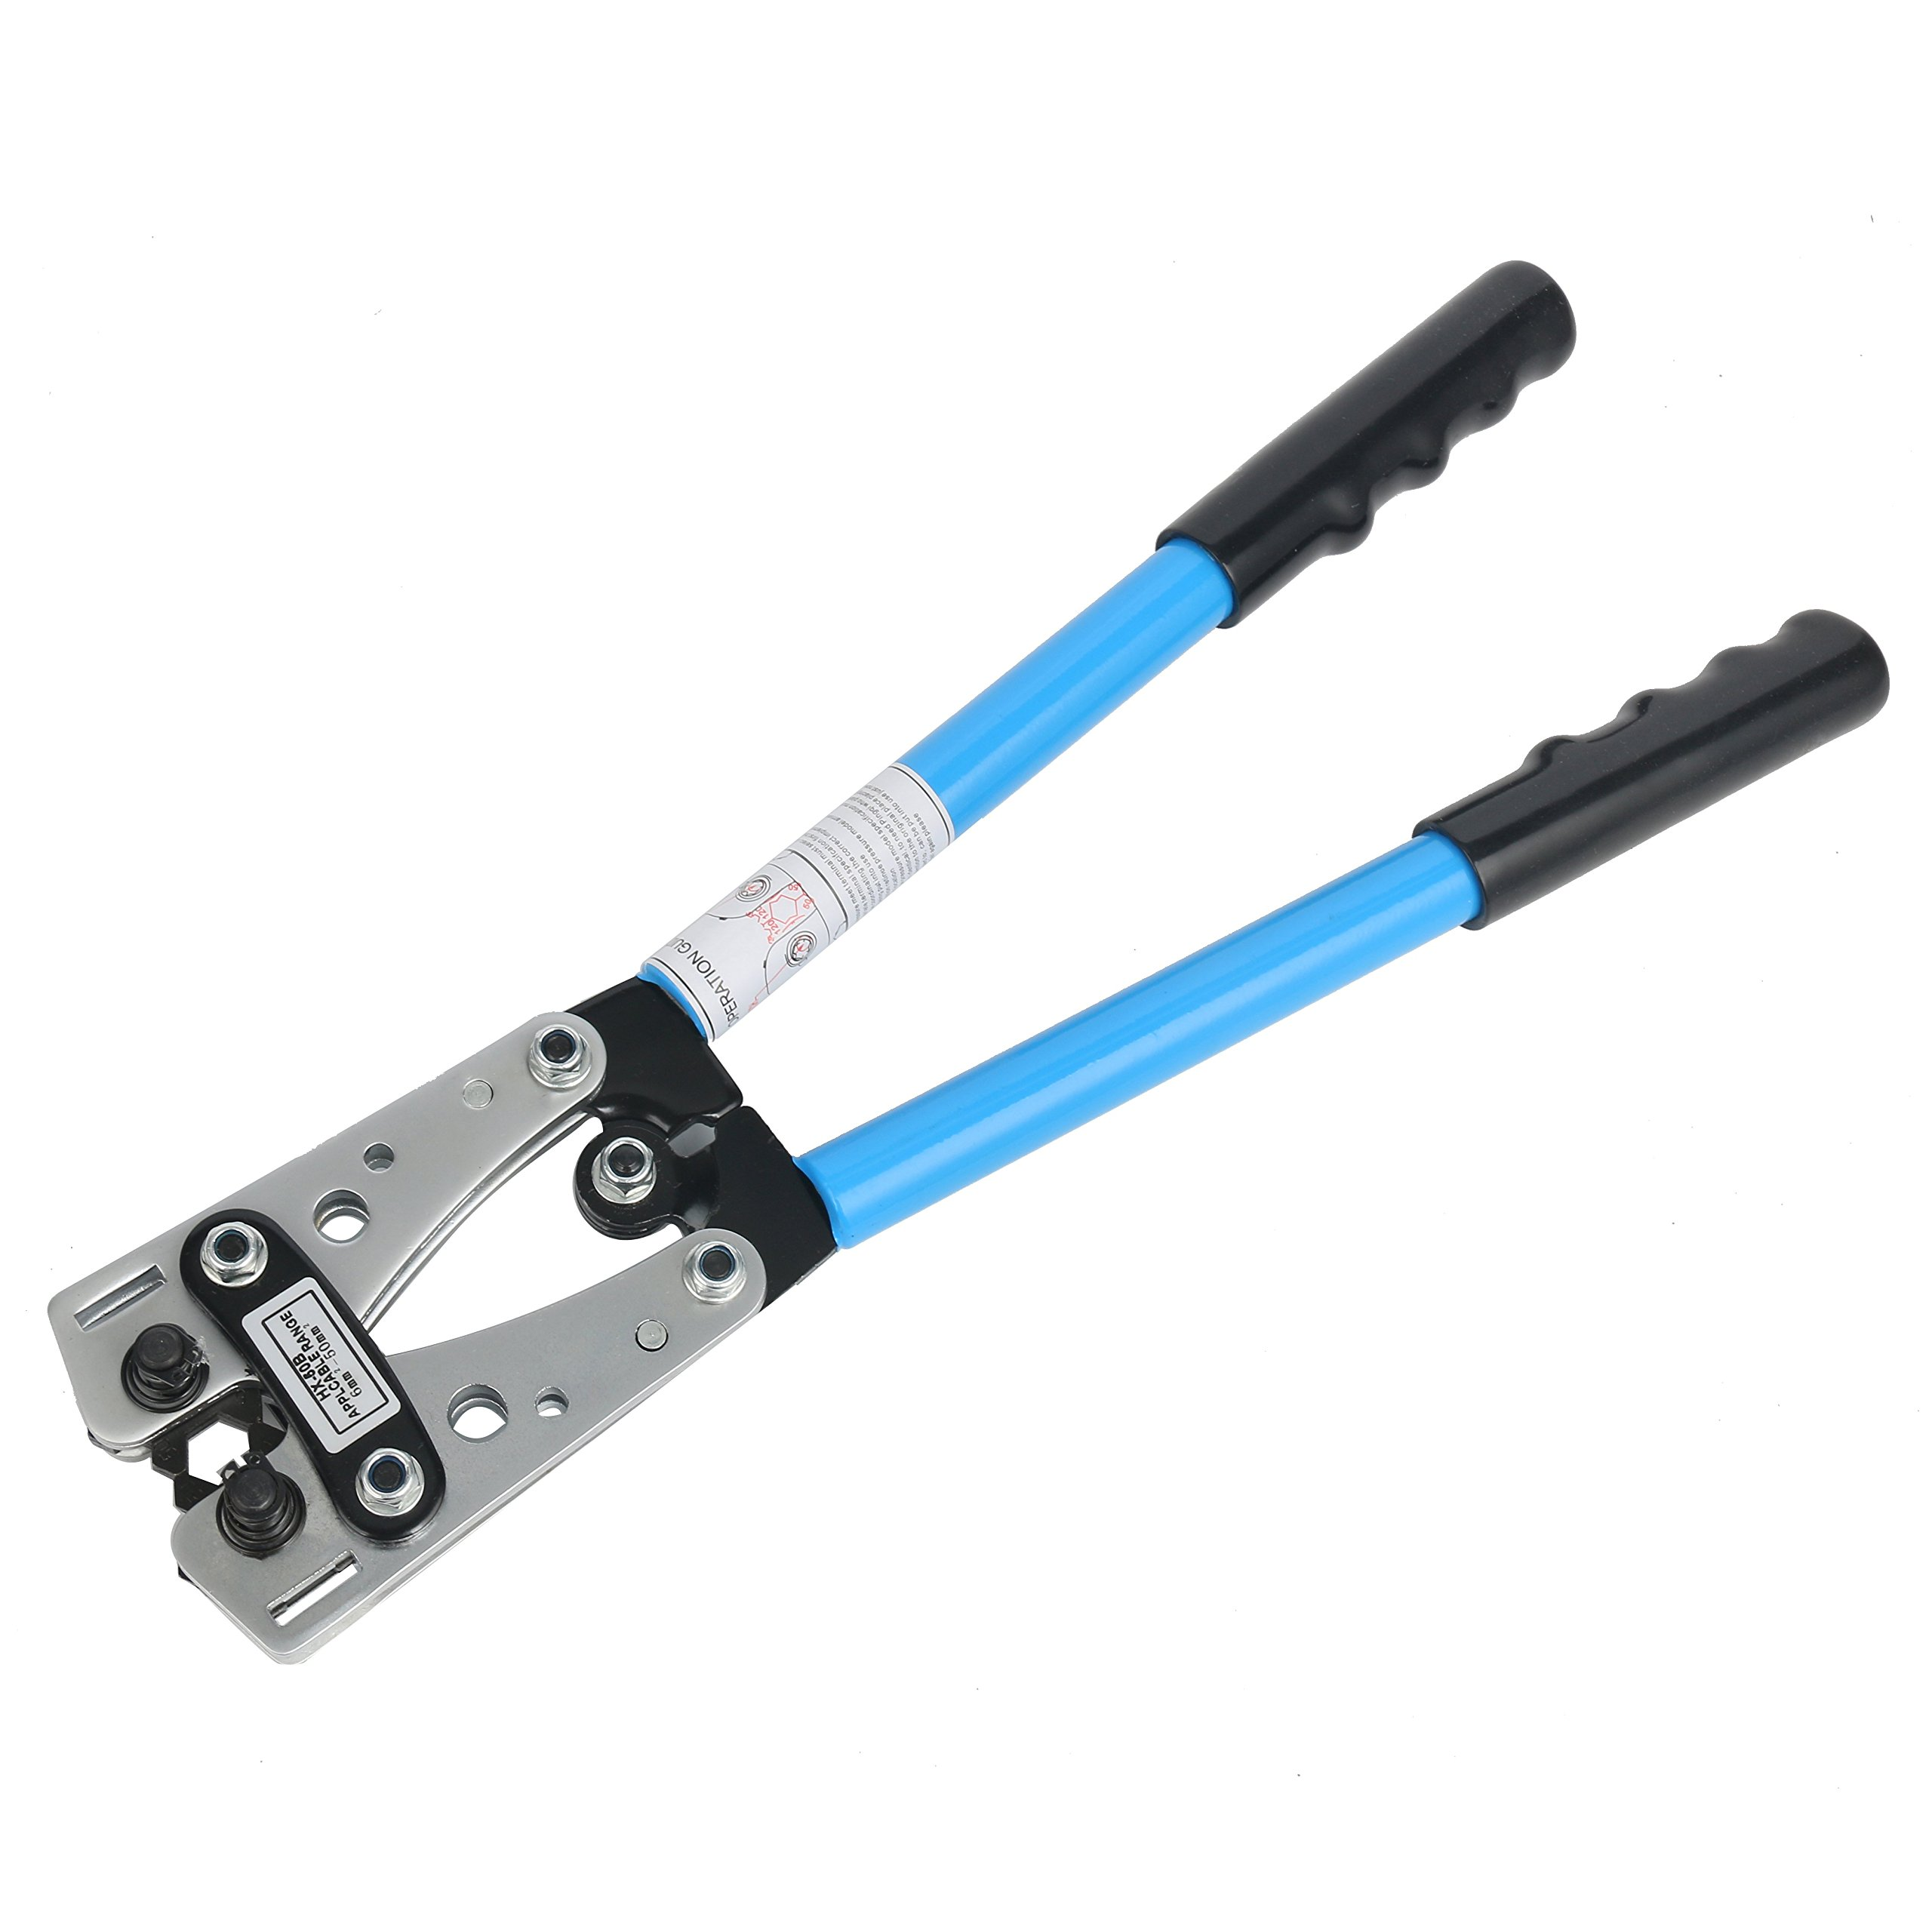 Yaetek Cable Crimper Cable Lug Crimping Tool Wire Crimper Hand Ratchet Terminal Crimp Pliers Wire Terminal Crimping Tool 6-50mm² Cable Lug Crimper Cu/Al Terminal for 10, 8, 4, 2, 1/0 AWG Wire Cable